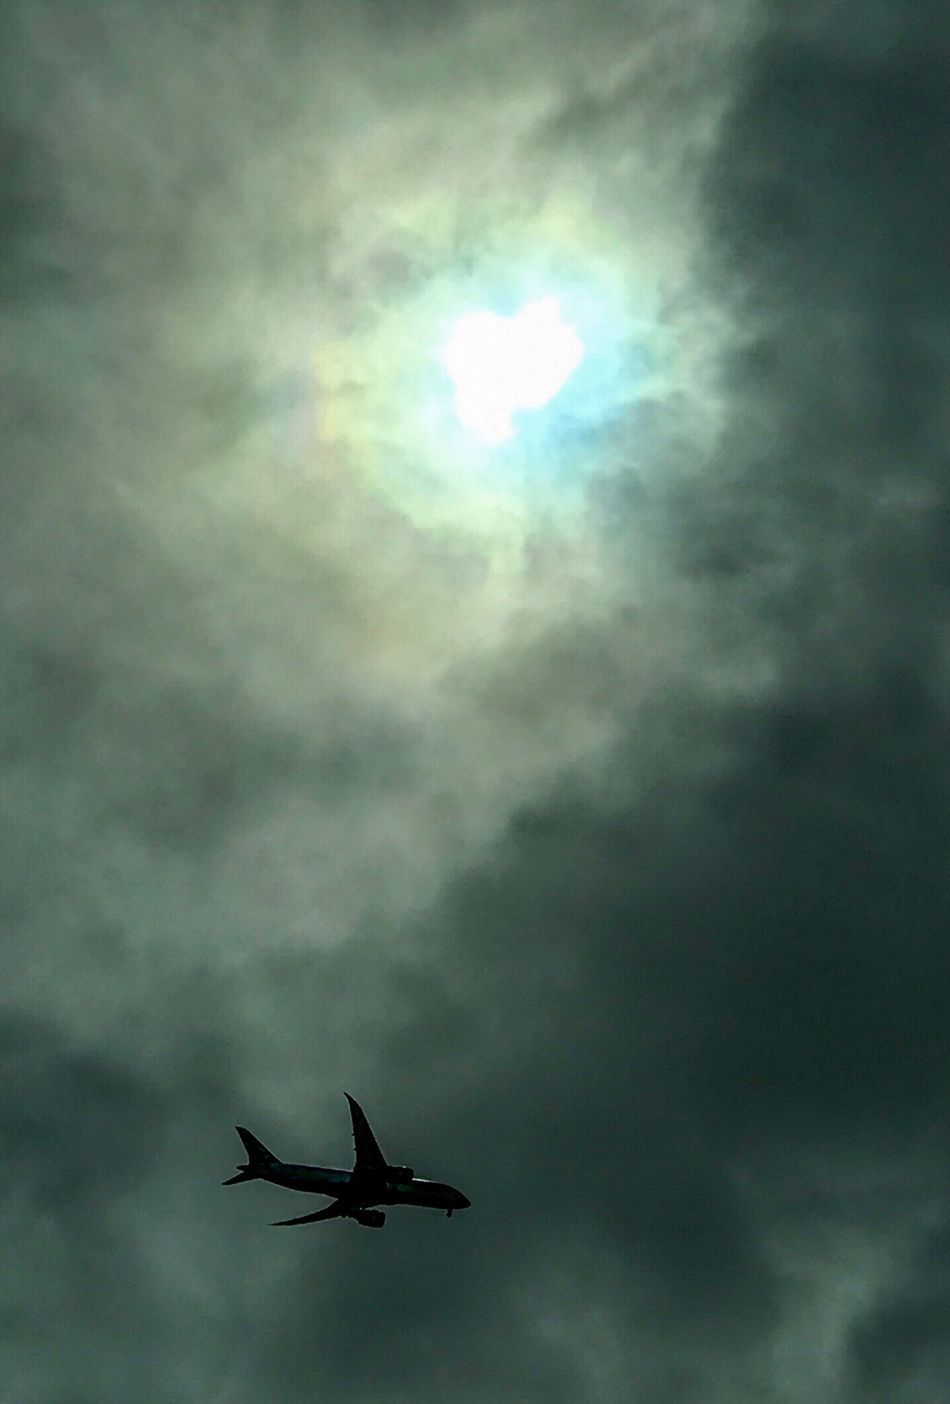 Sky Cloud - Sky Flying Cloud Low Angle View Animal Themes Nature No People Outdoors Day Airplane